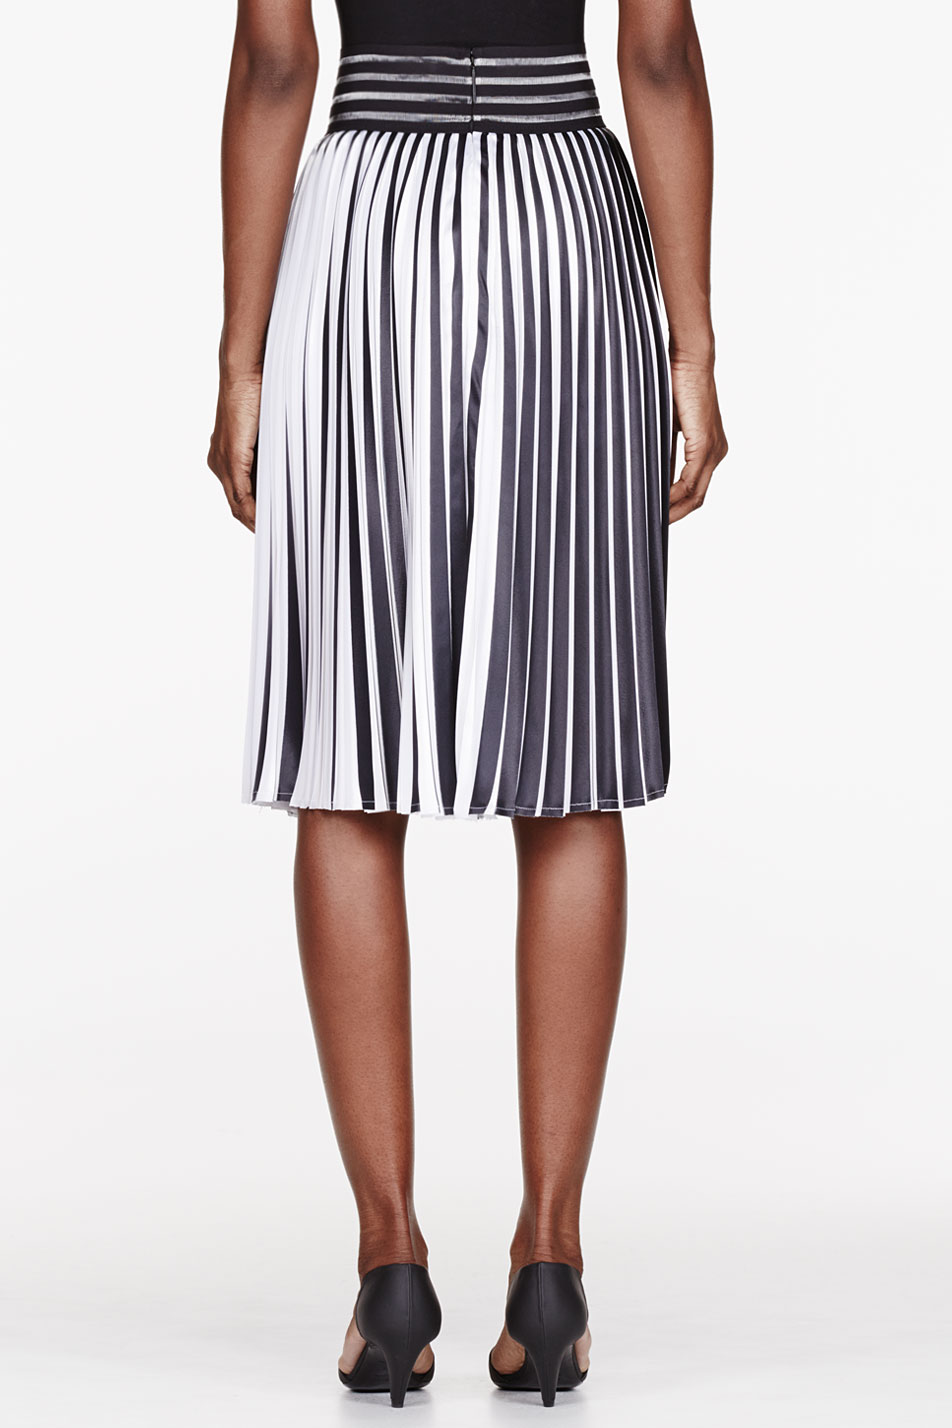 Black And White Pleated Skirt